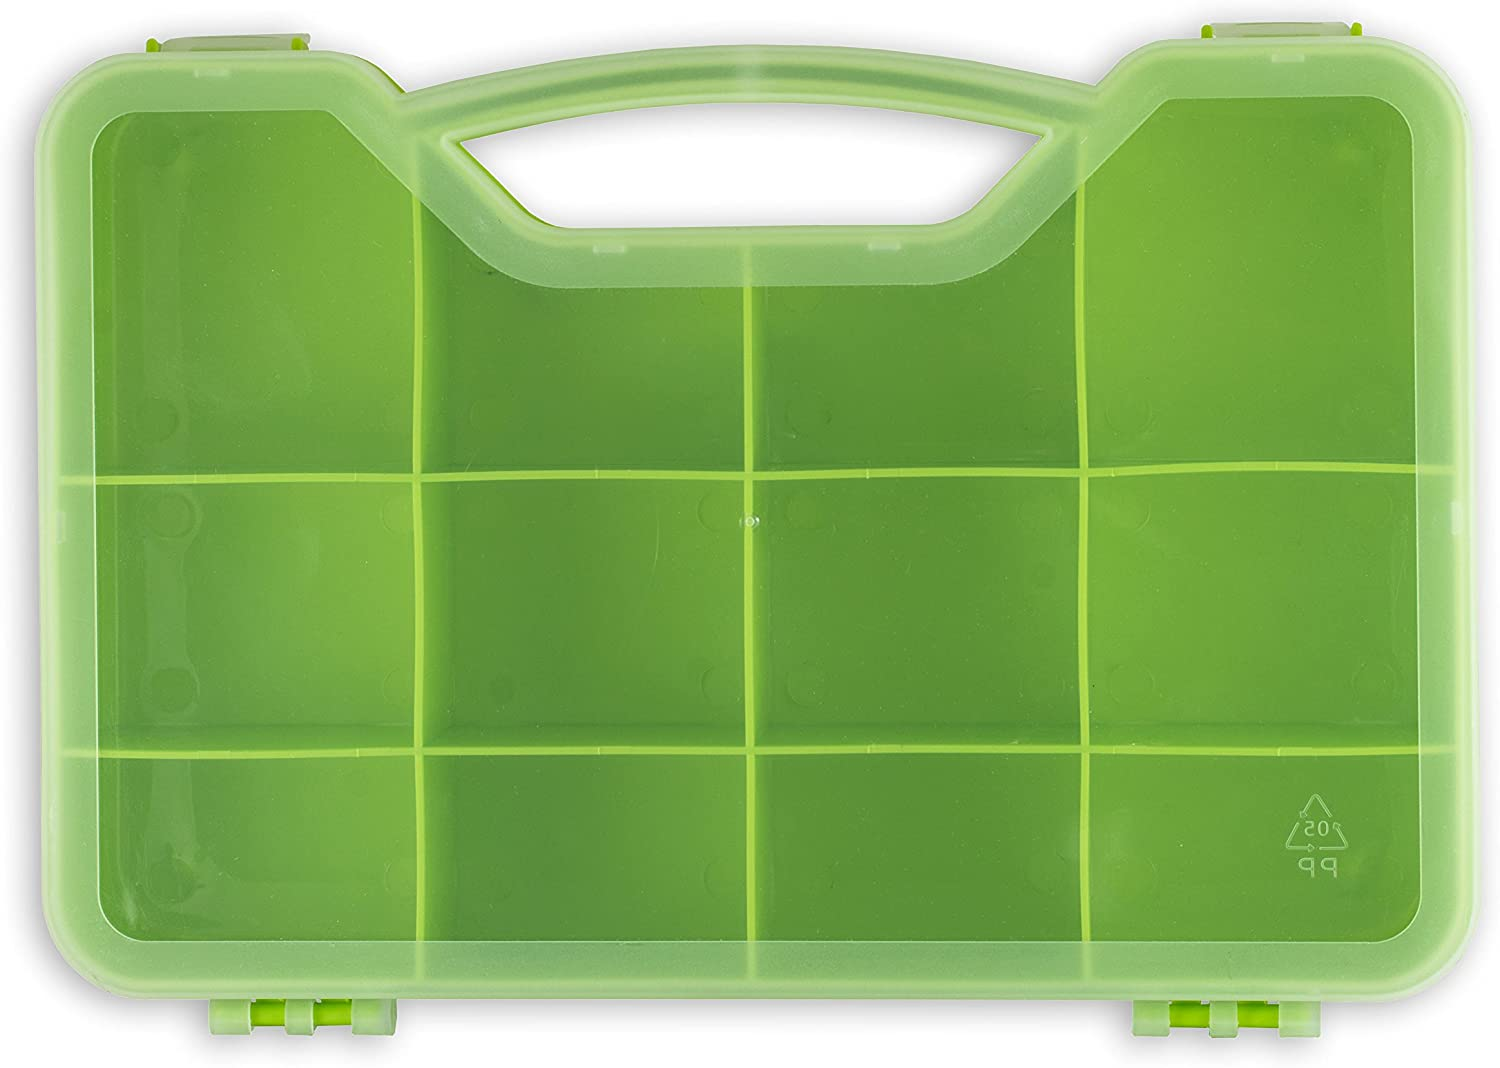 Penguin Supply Cases Toys and Crafts Storage Organizer Case Box - Fits Up to 75 Mini Figures Threads in All Styles Twisty Petz, Shopkins, Num Noms, Tsum Tsum, Twozies and Others (Green)